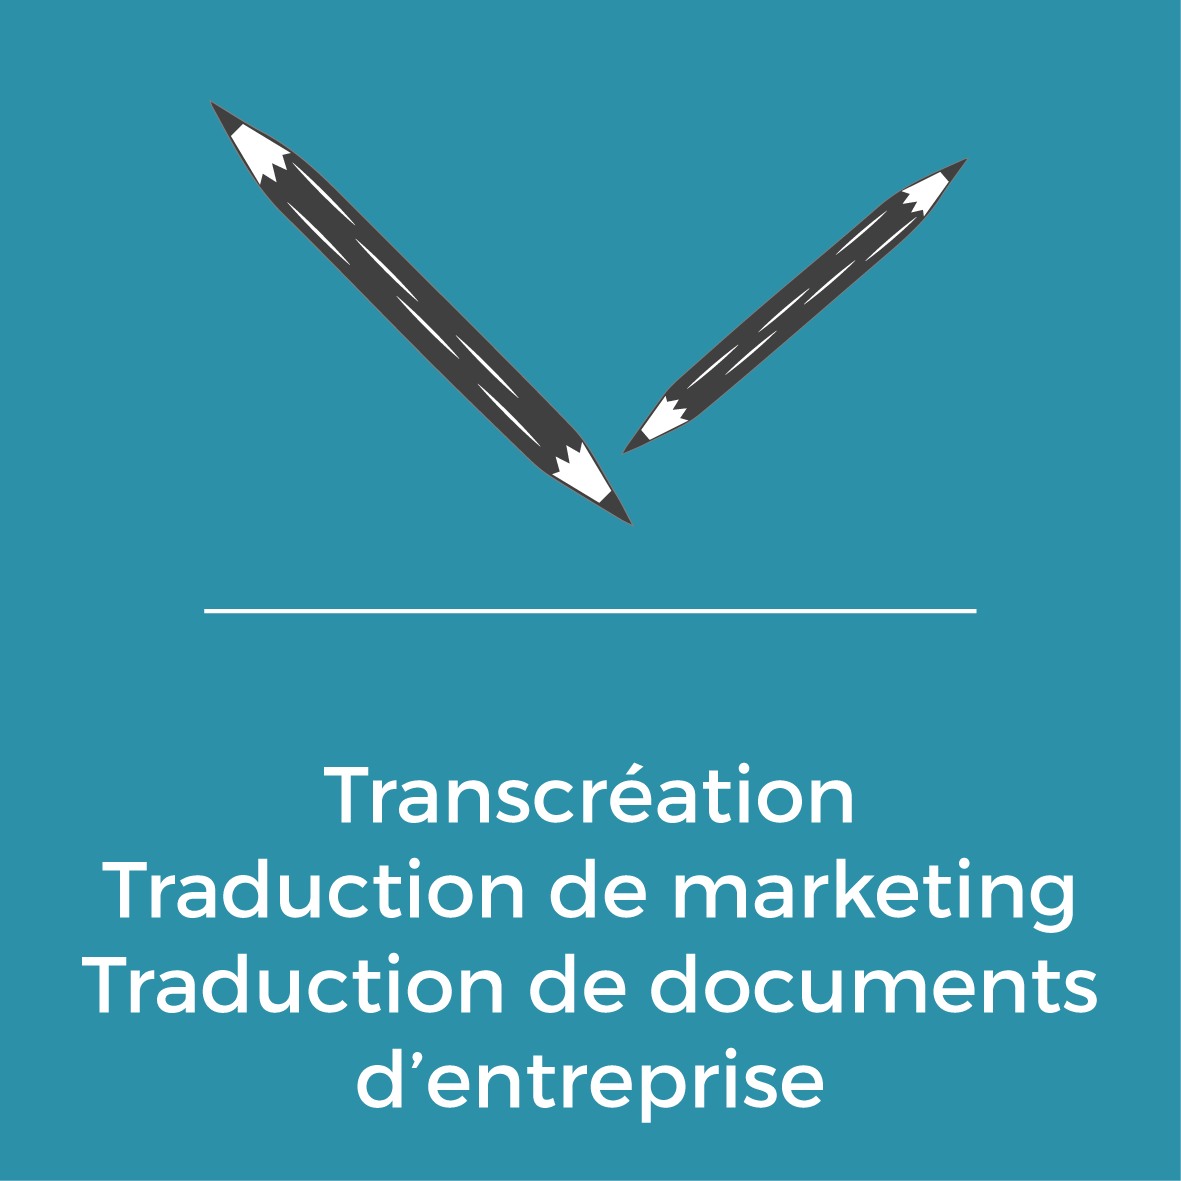 Services - Transcréation - Traduction de marketing - Traduction de documents d'enterprise